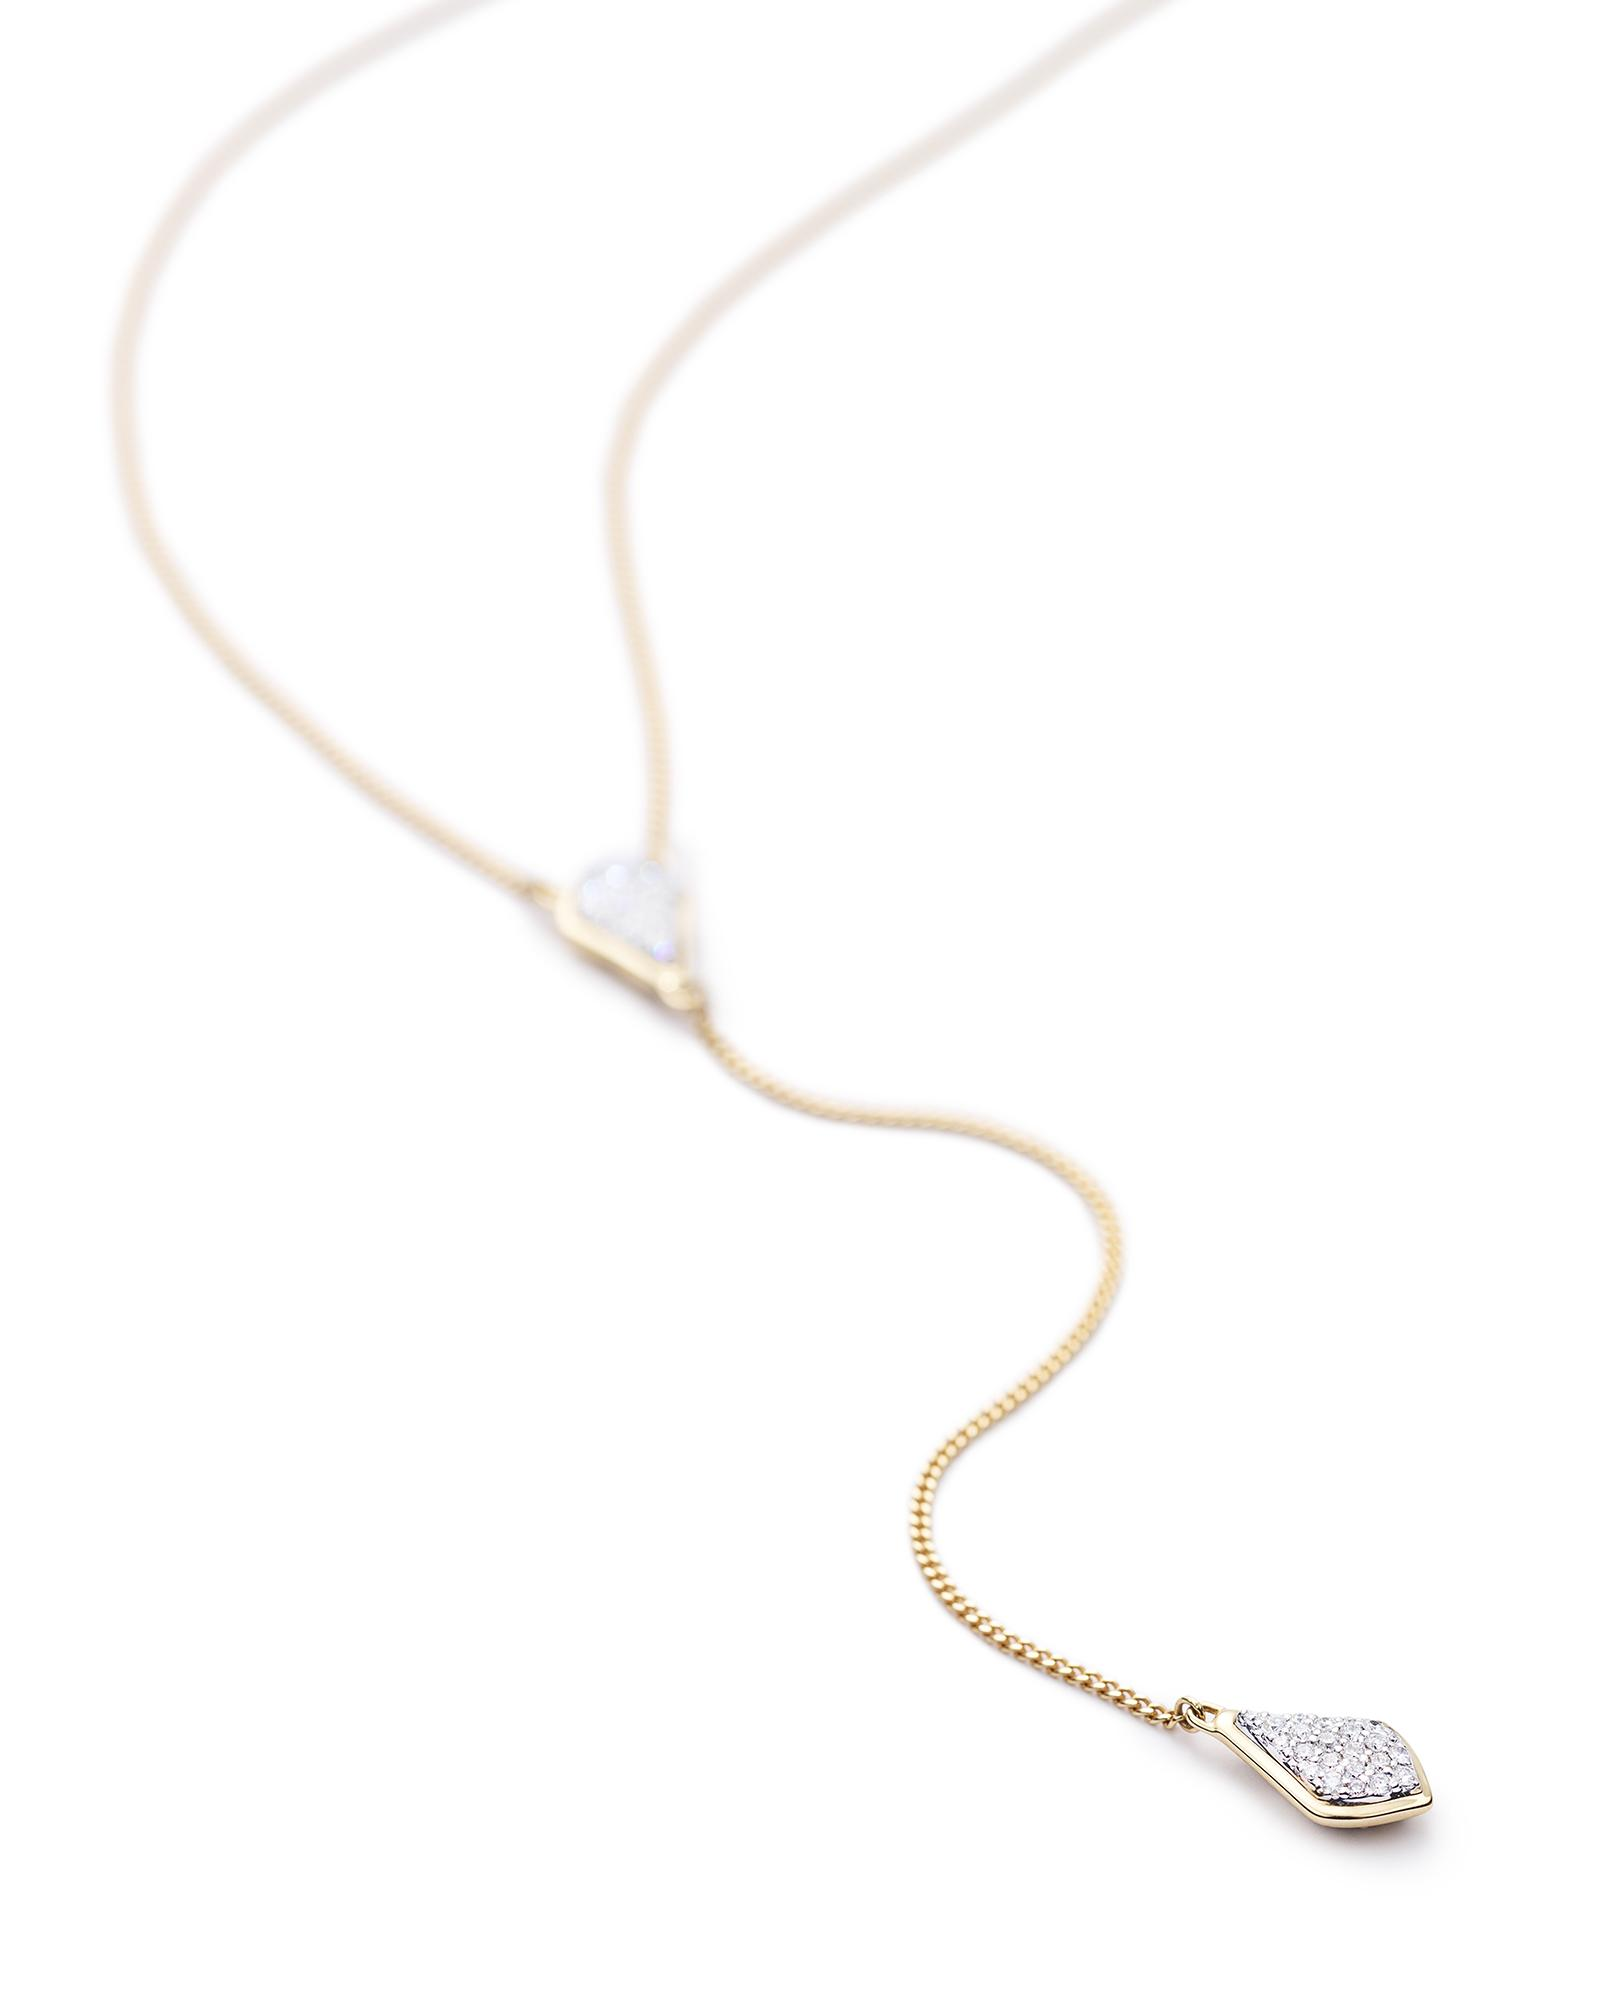 Lillian Lariat Necklace in Pave Diamond and 14k Yellow Gold